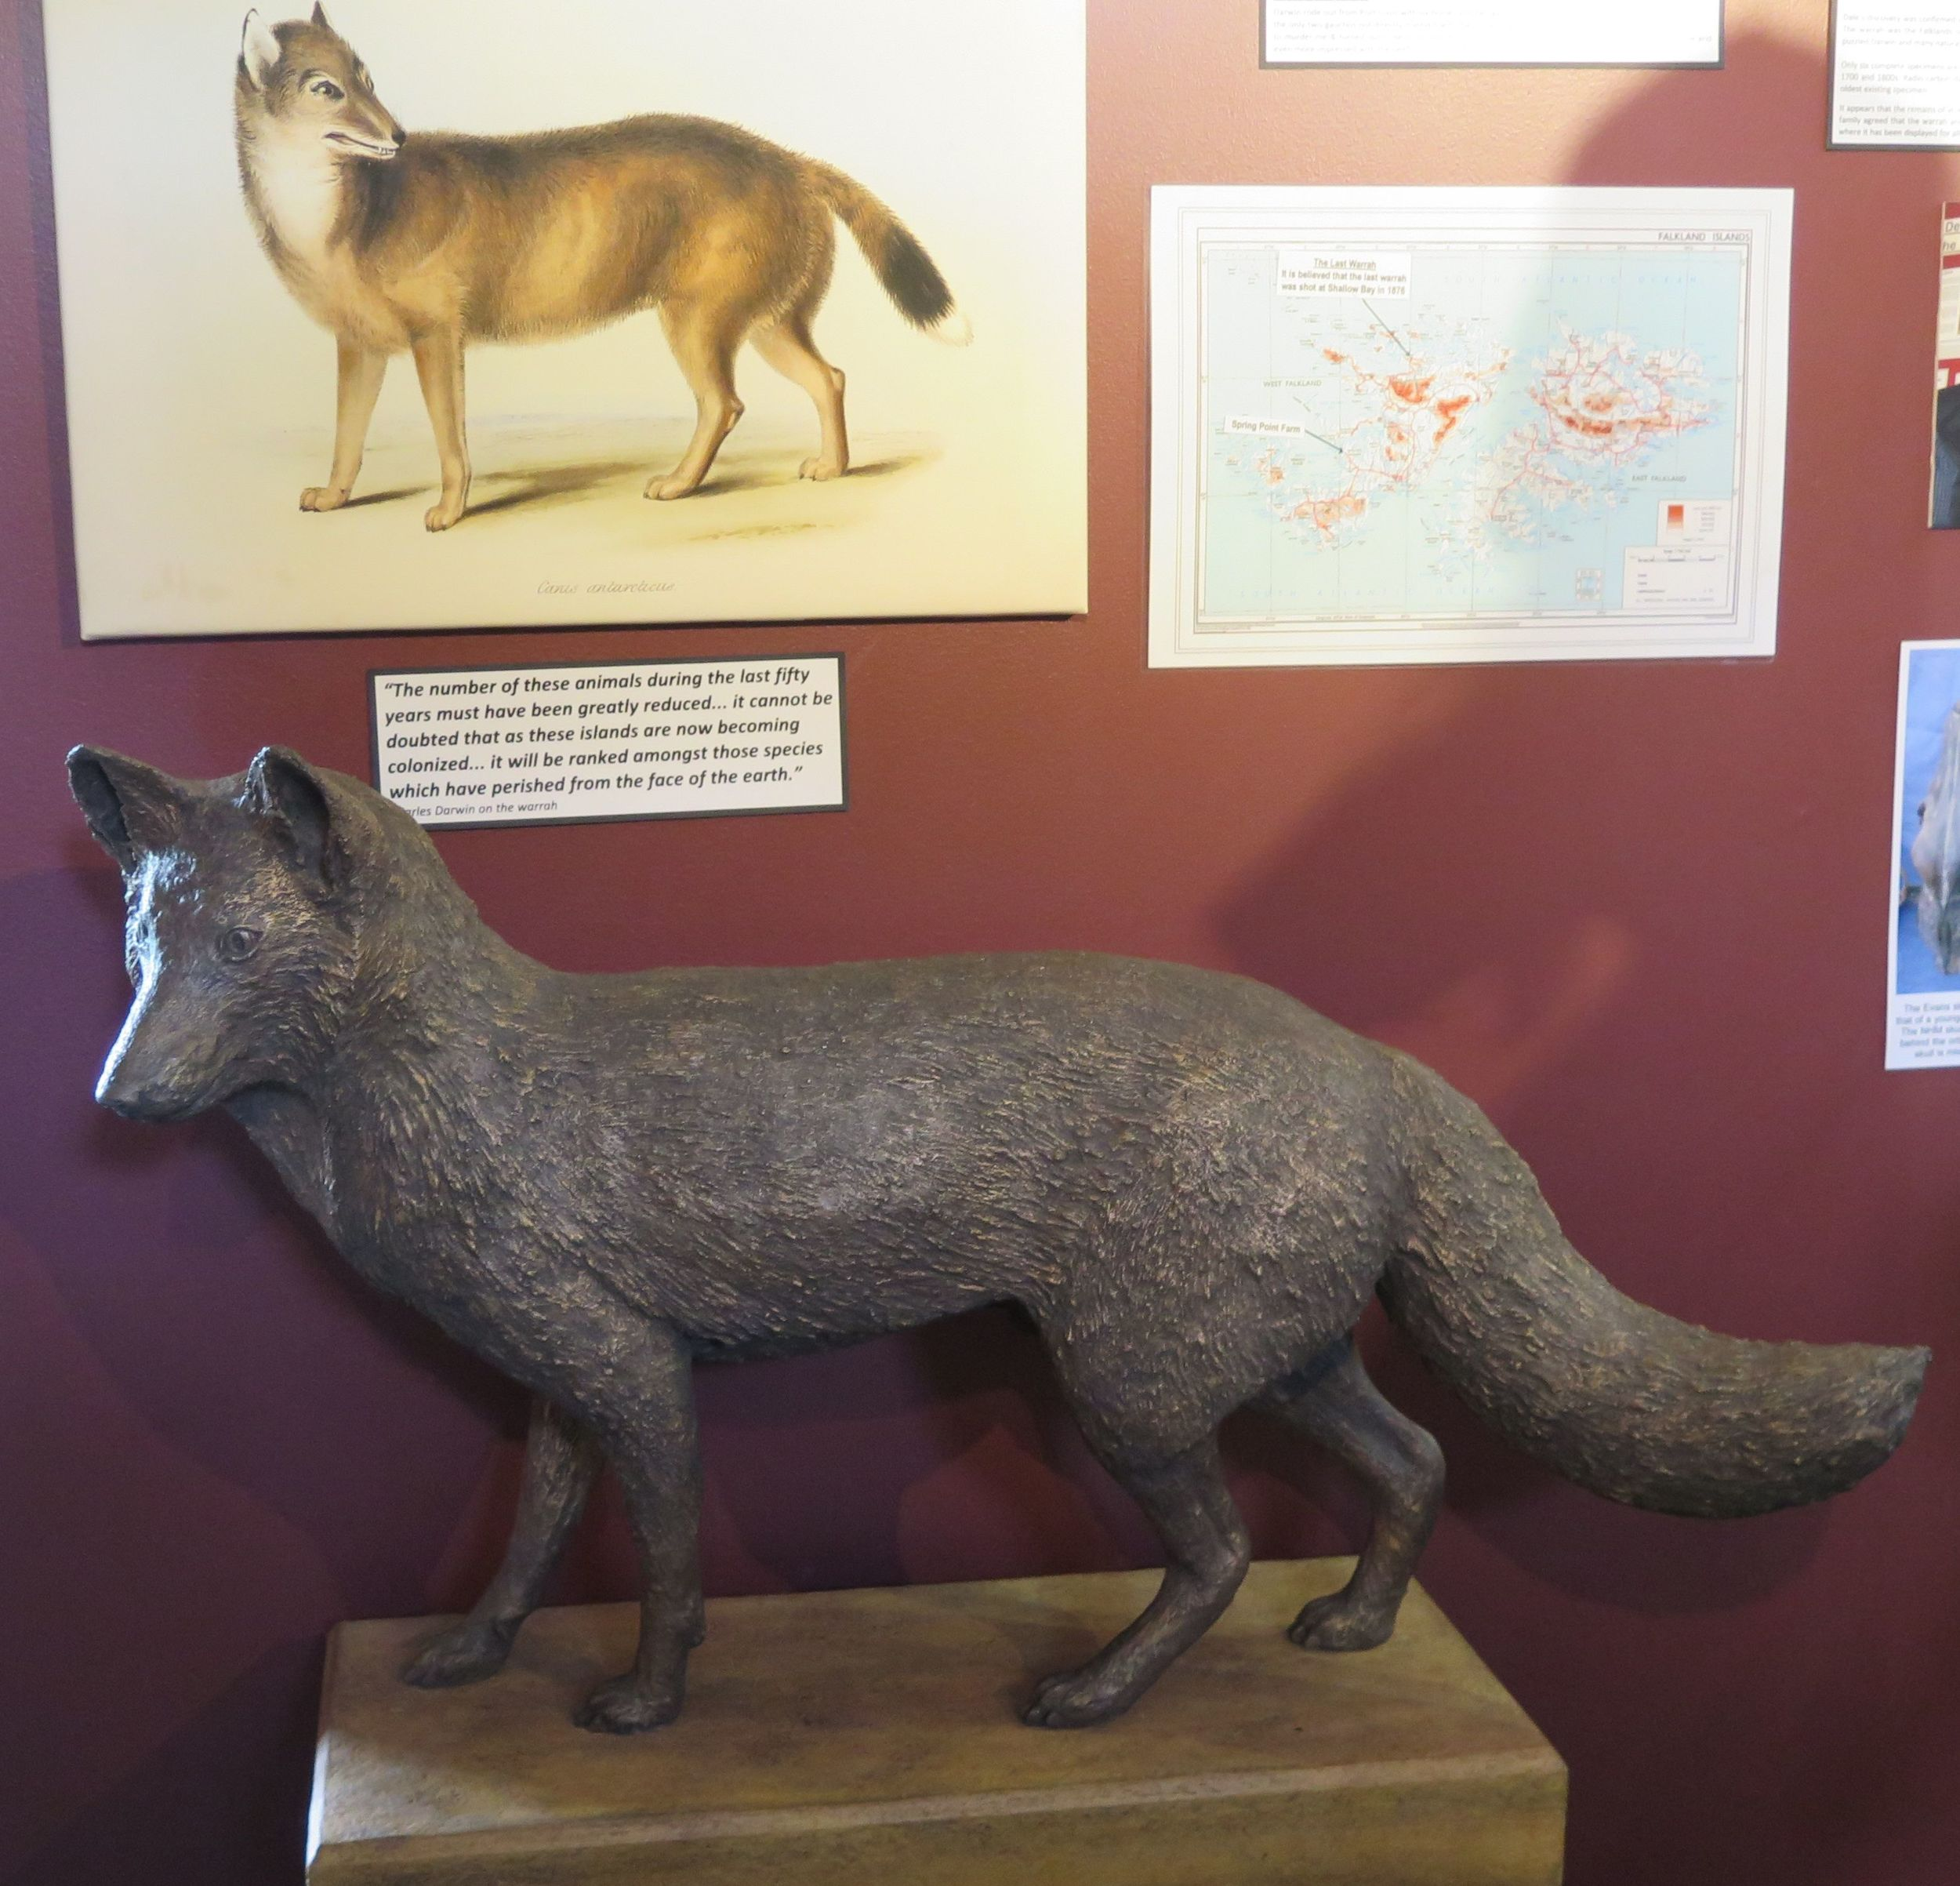 "The only land mammal native to the Falklands was a type of canid called a warrah (also known as a Falkland Islands wolf, Falkland Islands dog or Falkland Islands fox). Warrahs were extensively hunted for their fur and poisoned by Falklands farmers who feared that the canids would kill their sheep. The last one died in 1876, giving warrahs the unfortunate distinction of being the first known canid species to go extinct in historical (as opposed to prehistoric) times. During his visit to the Falklands in the 1830s, Charles Darwin wrote prophetically, ""It will be ranked among those species which have perished from the face of the Earth."" All that's left now is this statue in the Stanley museum."